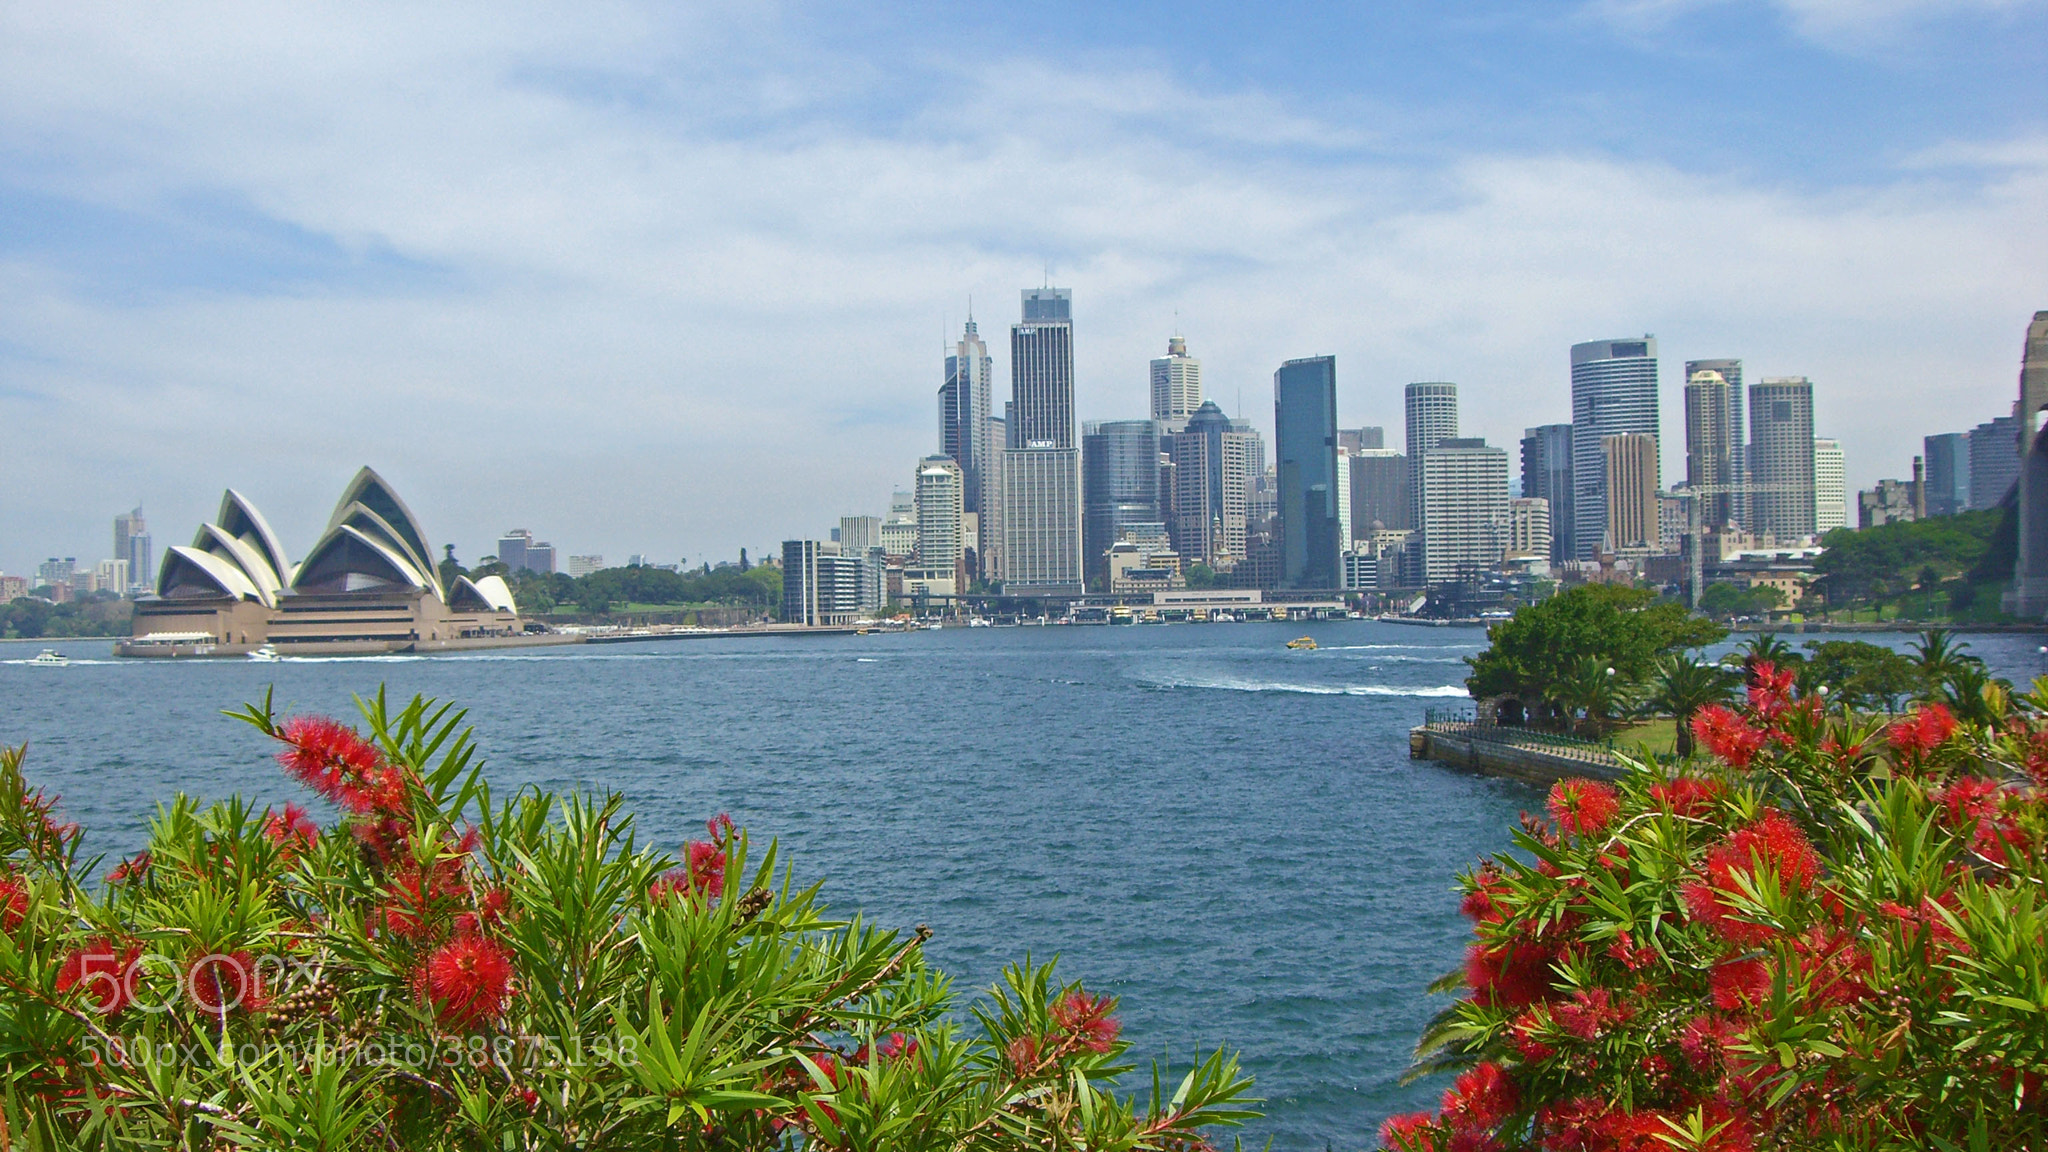 Photograph North Sydney View by Eng Yap on 500px